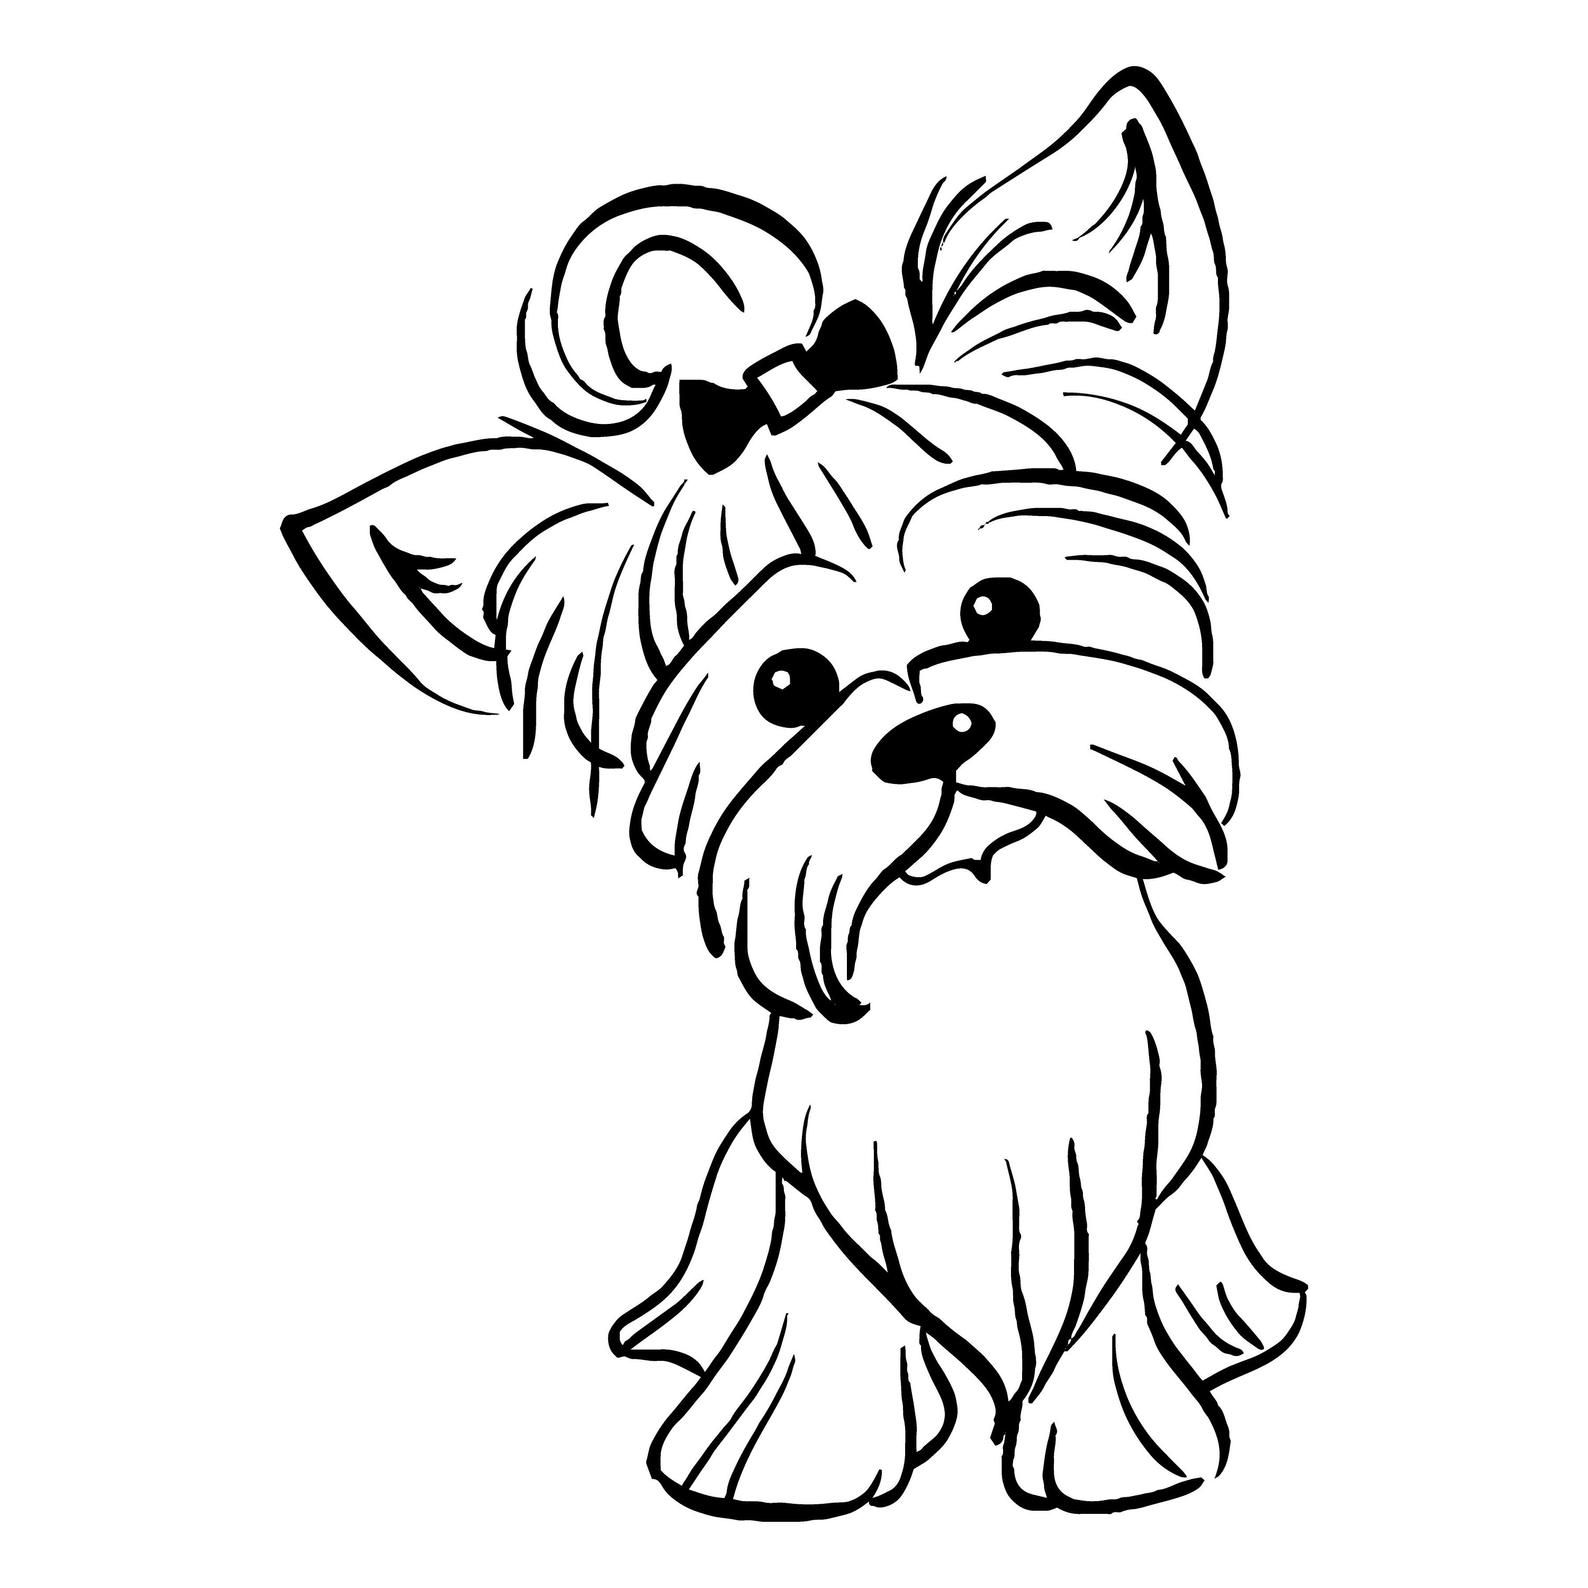 Yorkshire Terrier 3 Puppy Peeking Yorkie Dog Breed K 9 Etsy In 2020 Puppy Coloring Pages Dog Coloring Page Dog Drawing